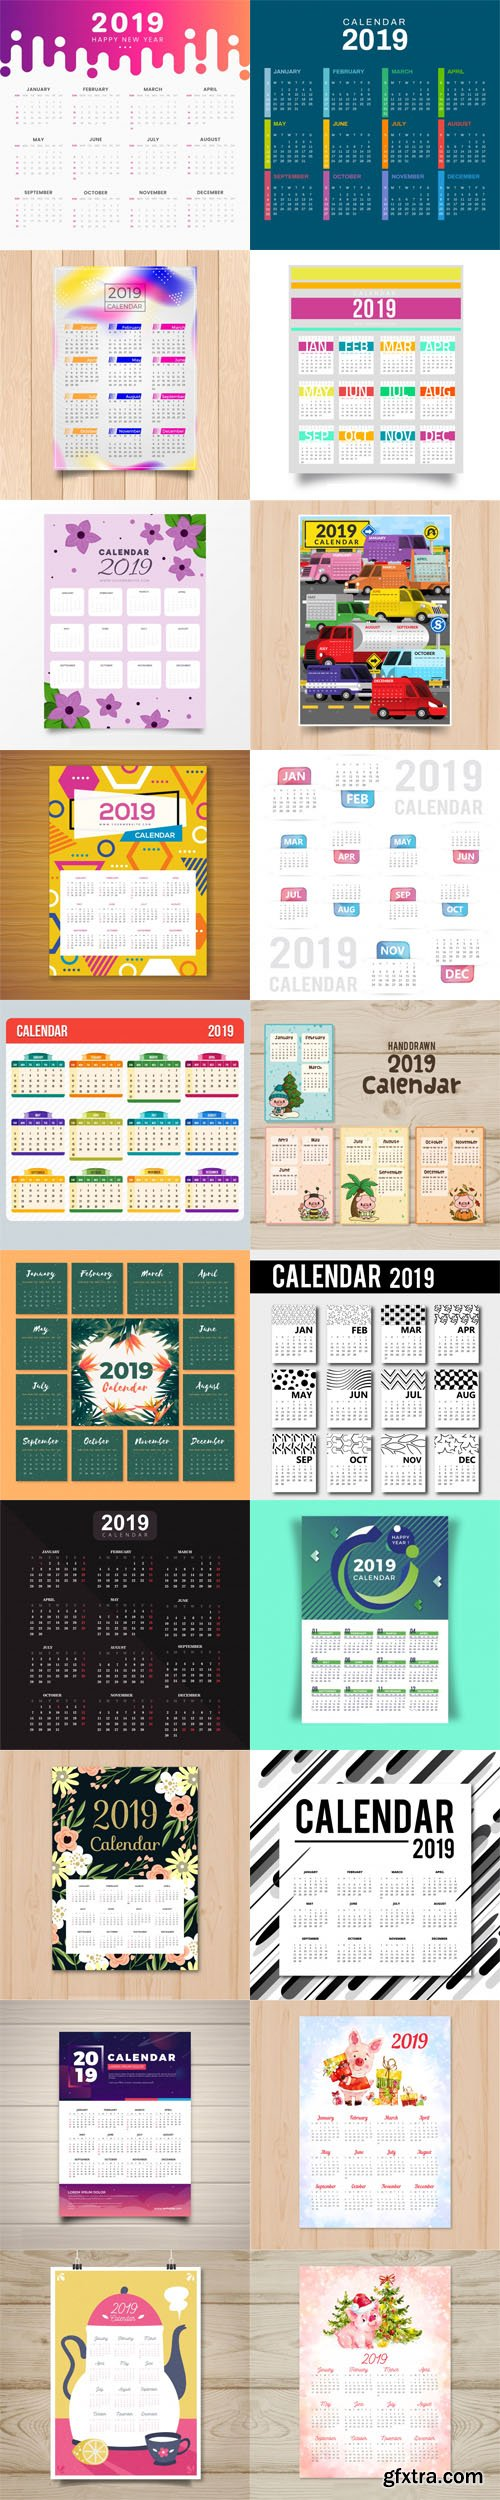 2019 Calendar Vector Templates Collection 7  [20 Calendars]